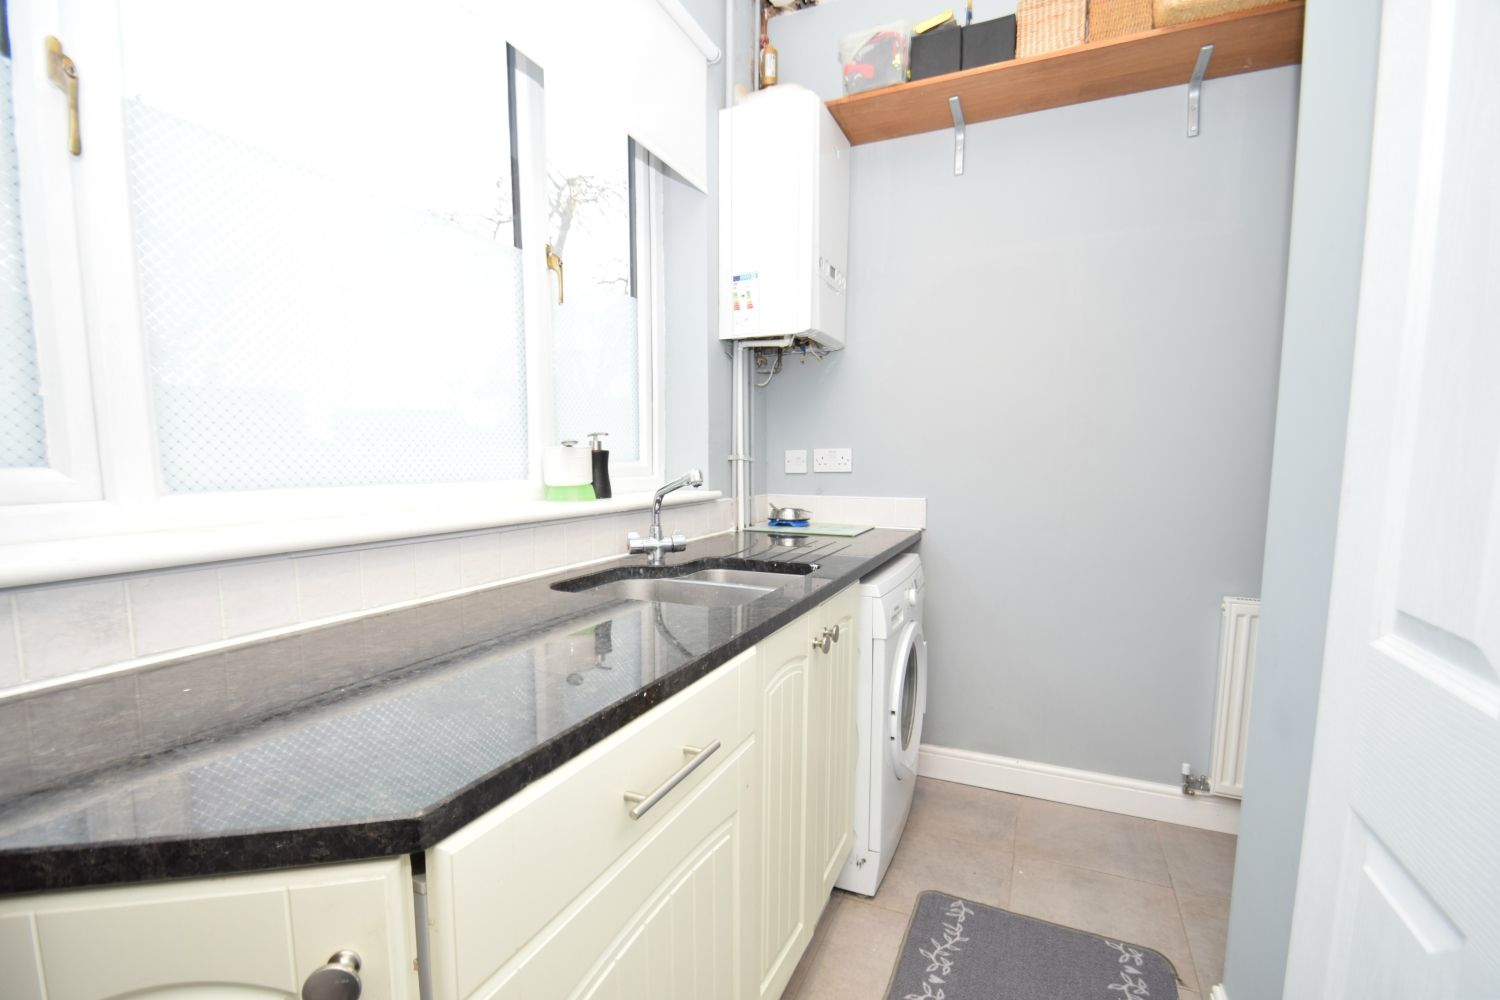 4 bed semi-detached for sale in Upland Grove, Bromsgrove, B61 13